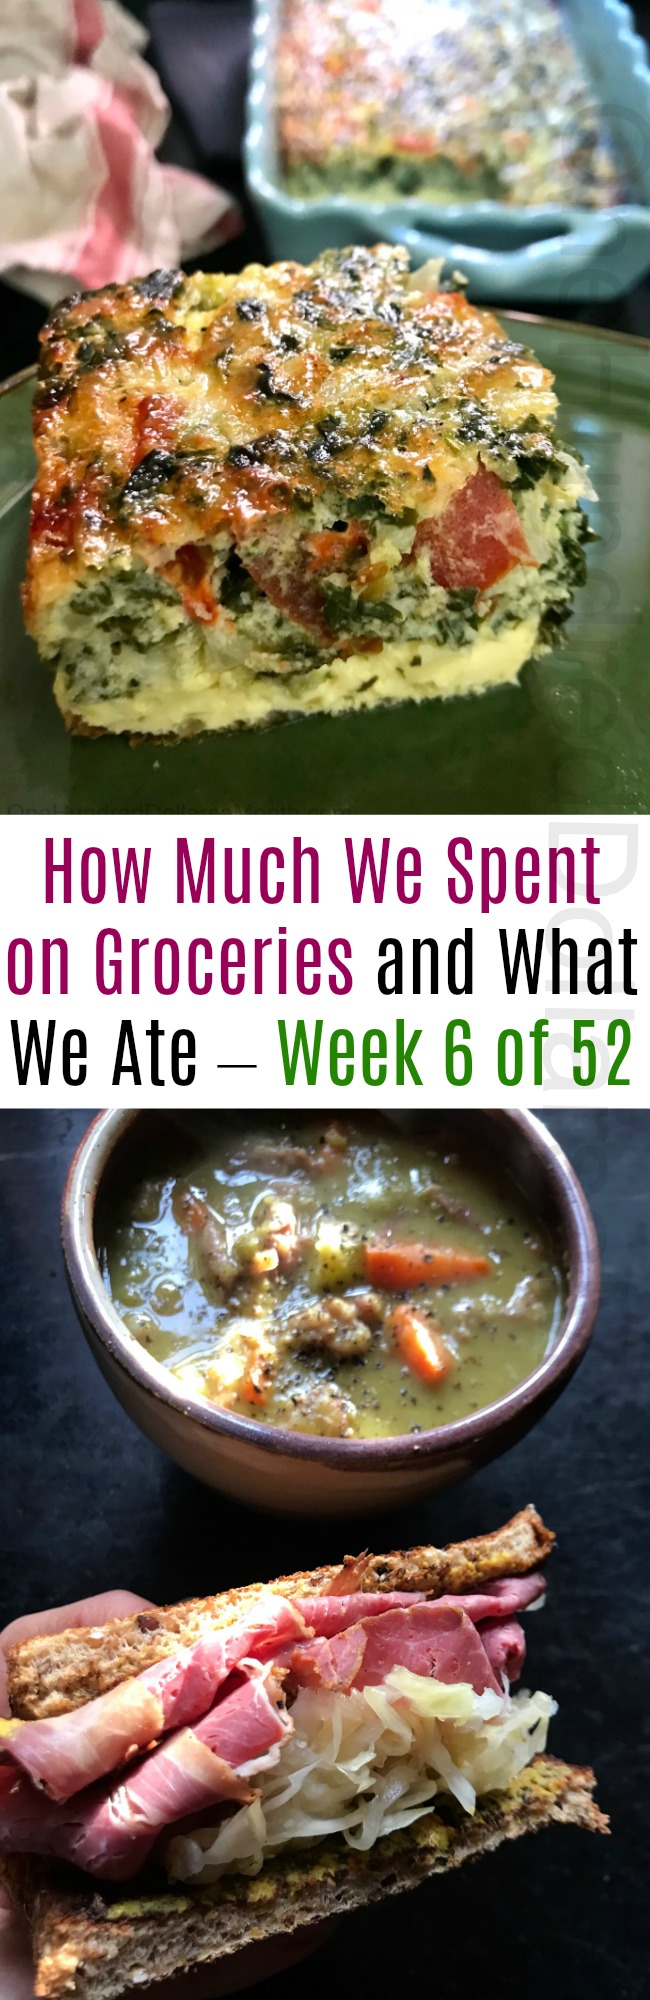 How Much We Spent on Groceries and What We Ate – Week 6 of 52